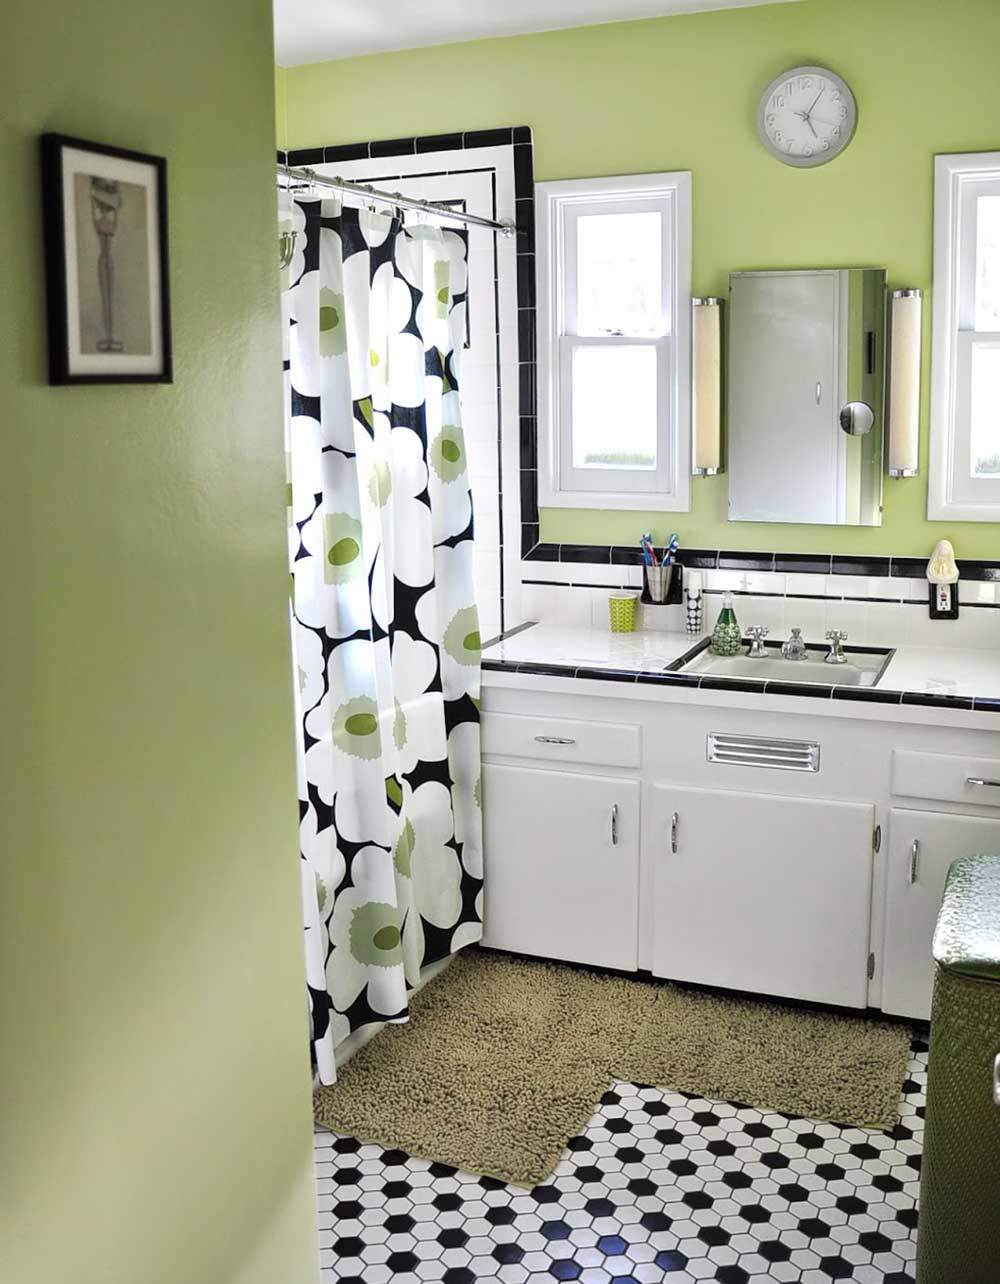 black and white tile bathroom black and white tile bathrooms done 6 different ways 22752